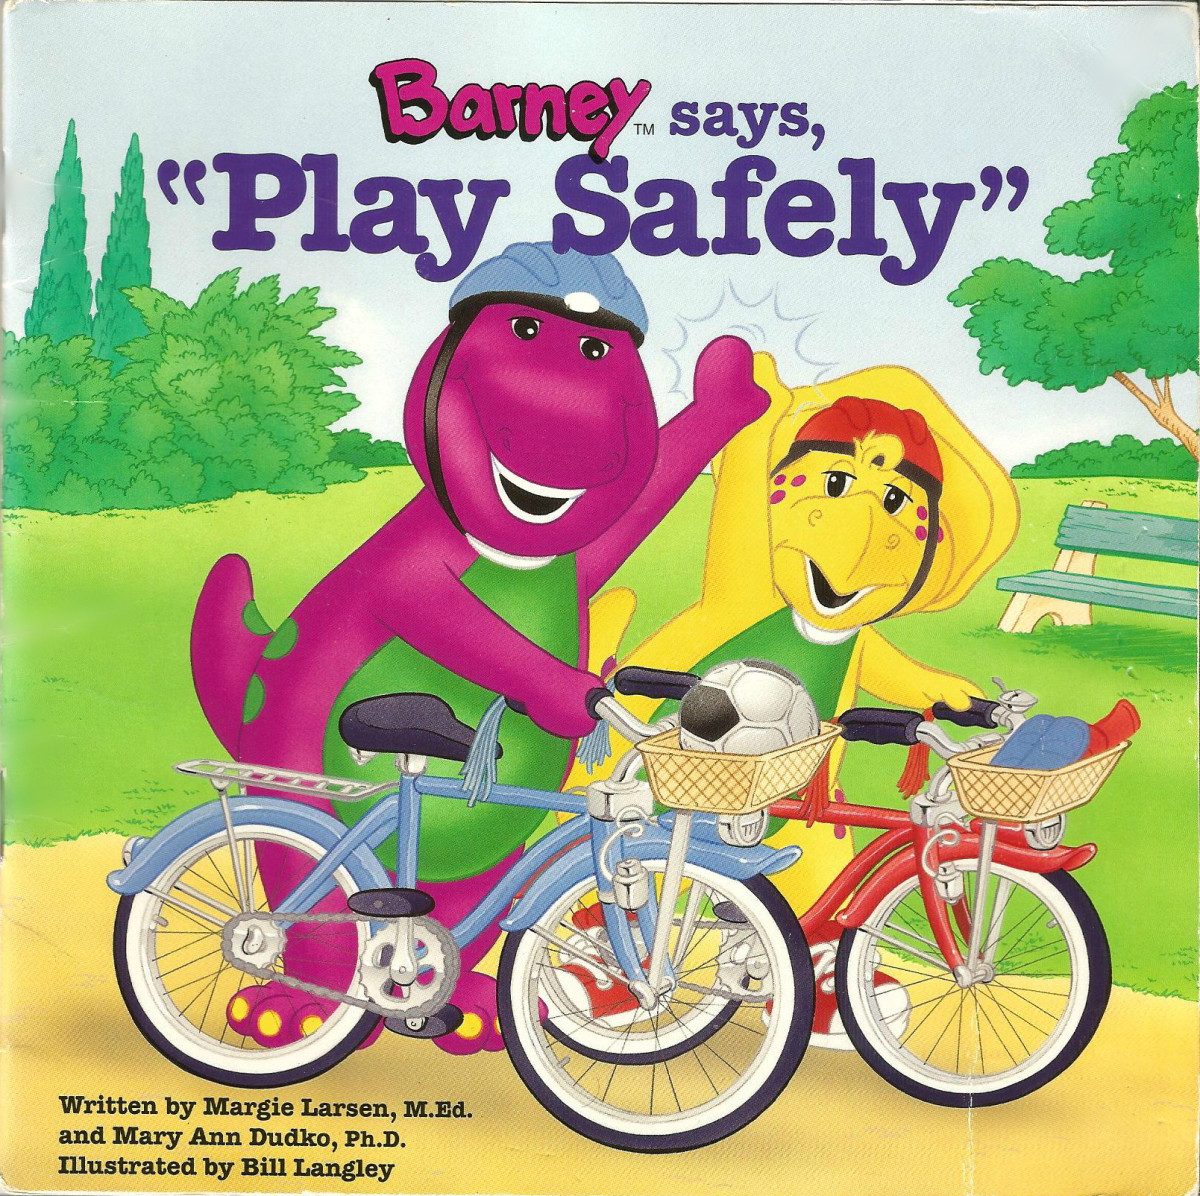 Published in 1996 by Barney Publishing a division the the Lyon Group. This book was written by Margie Larsen, M.Ed. and Marry Ann Dudko, Ph.D. and illustrated by Bill Langley.